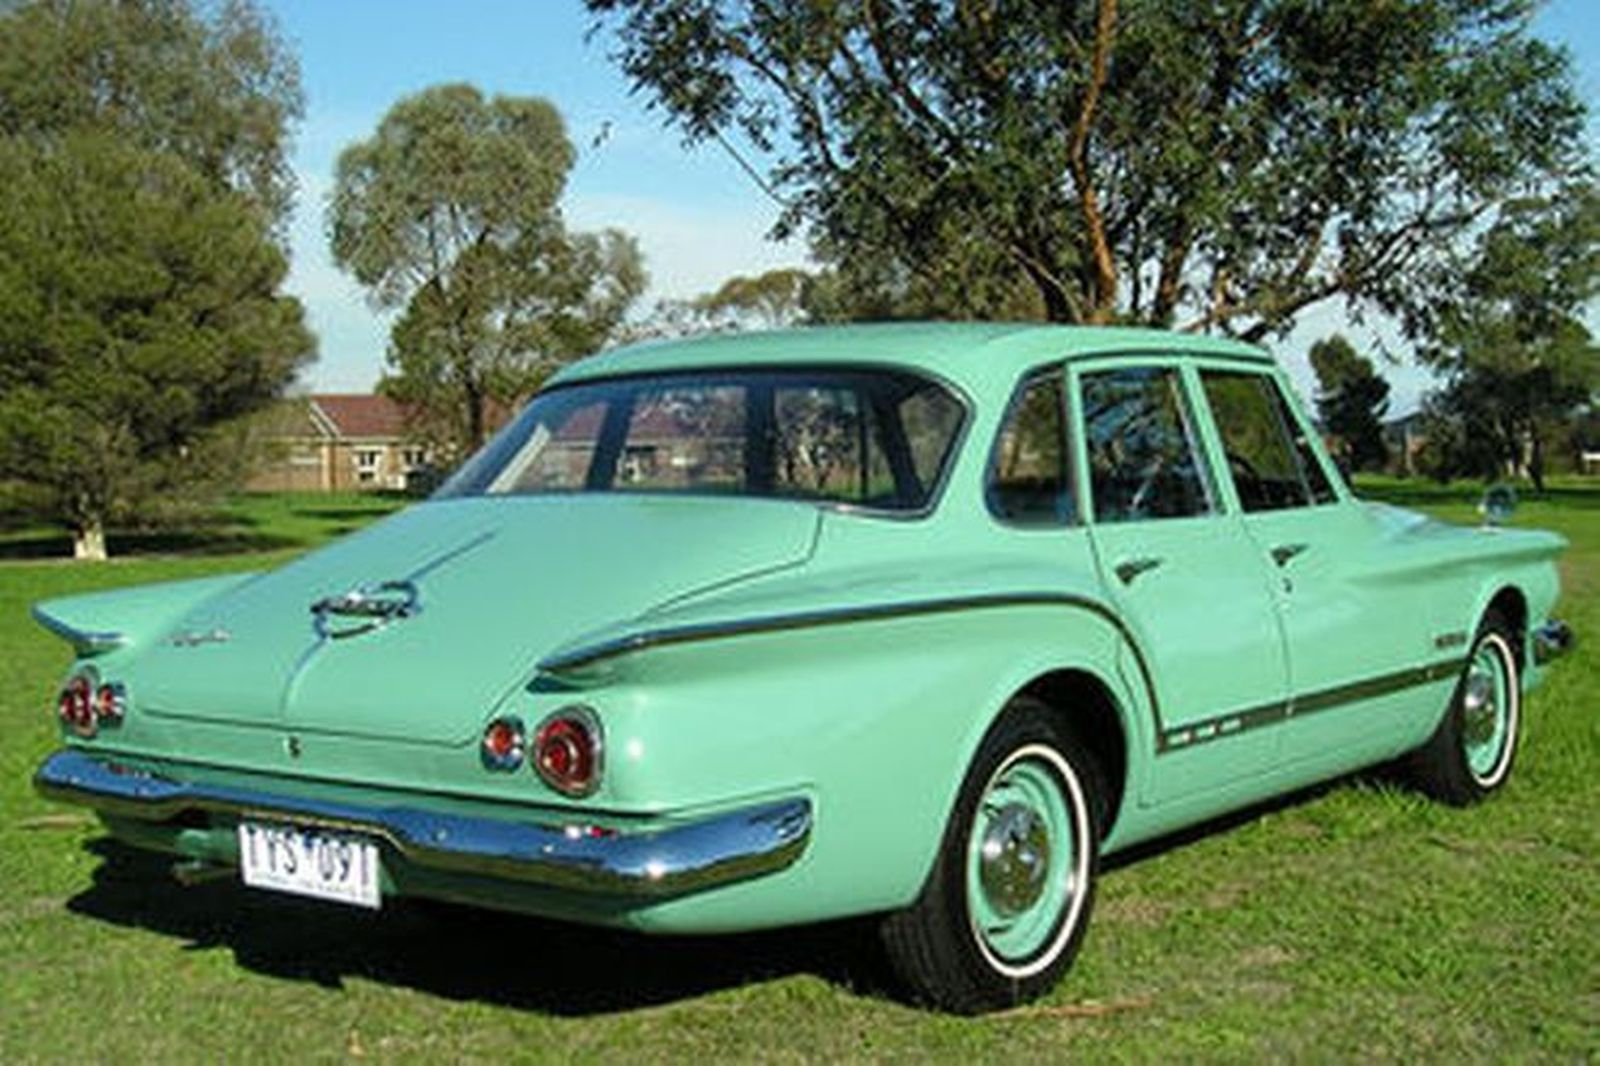 Sold Valiant S Series Sedan Auctions Lot 4 Shannons